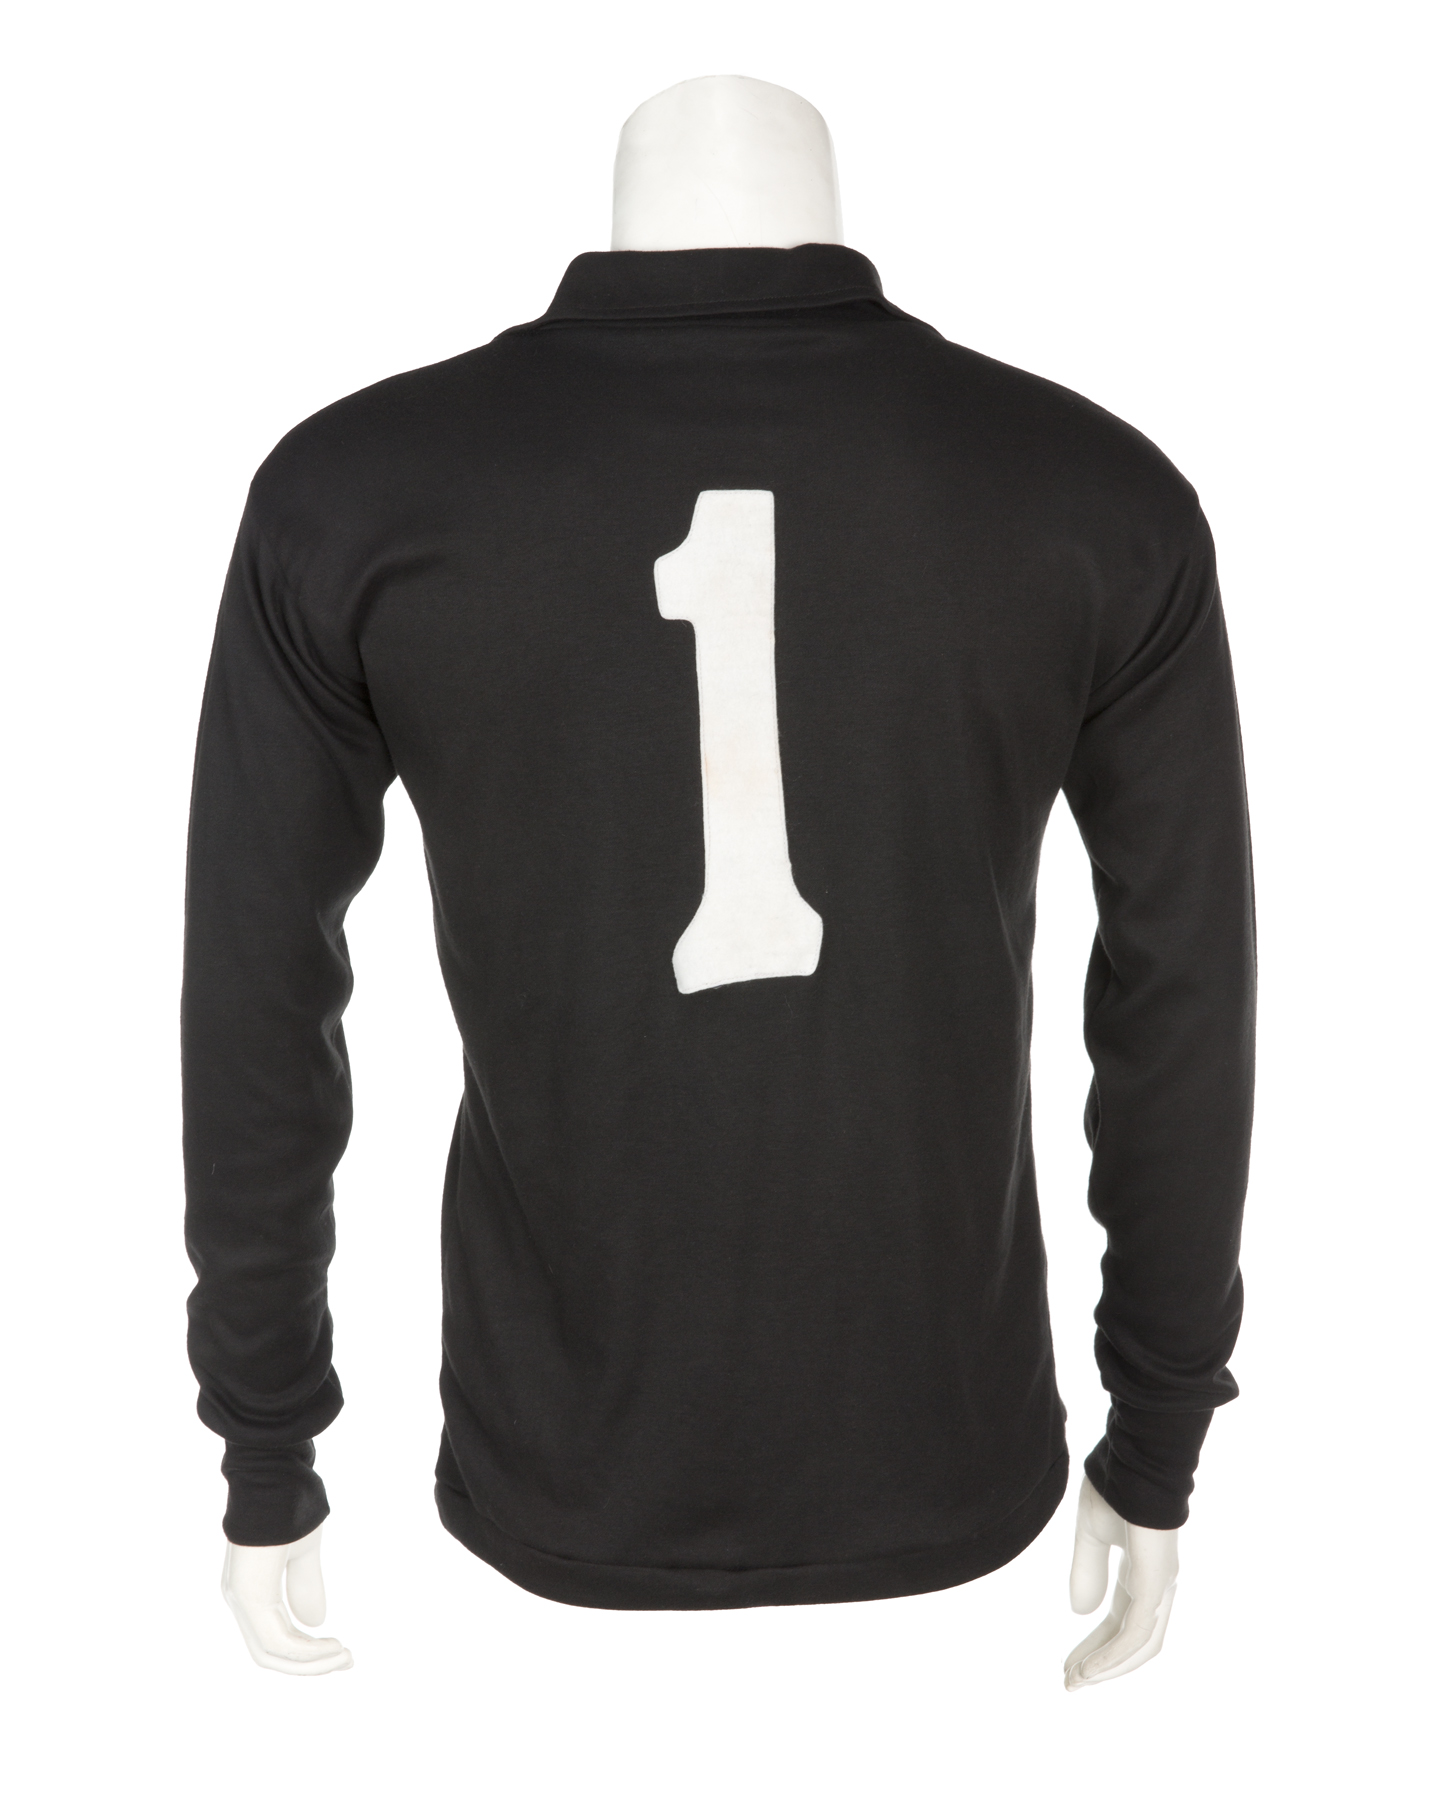 A long sleeve Dynamo Moscow football jersey match worn by the